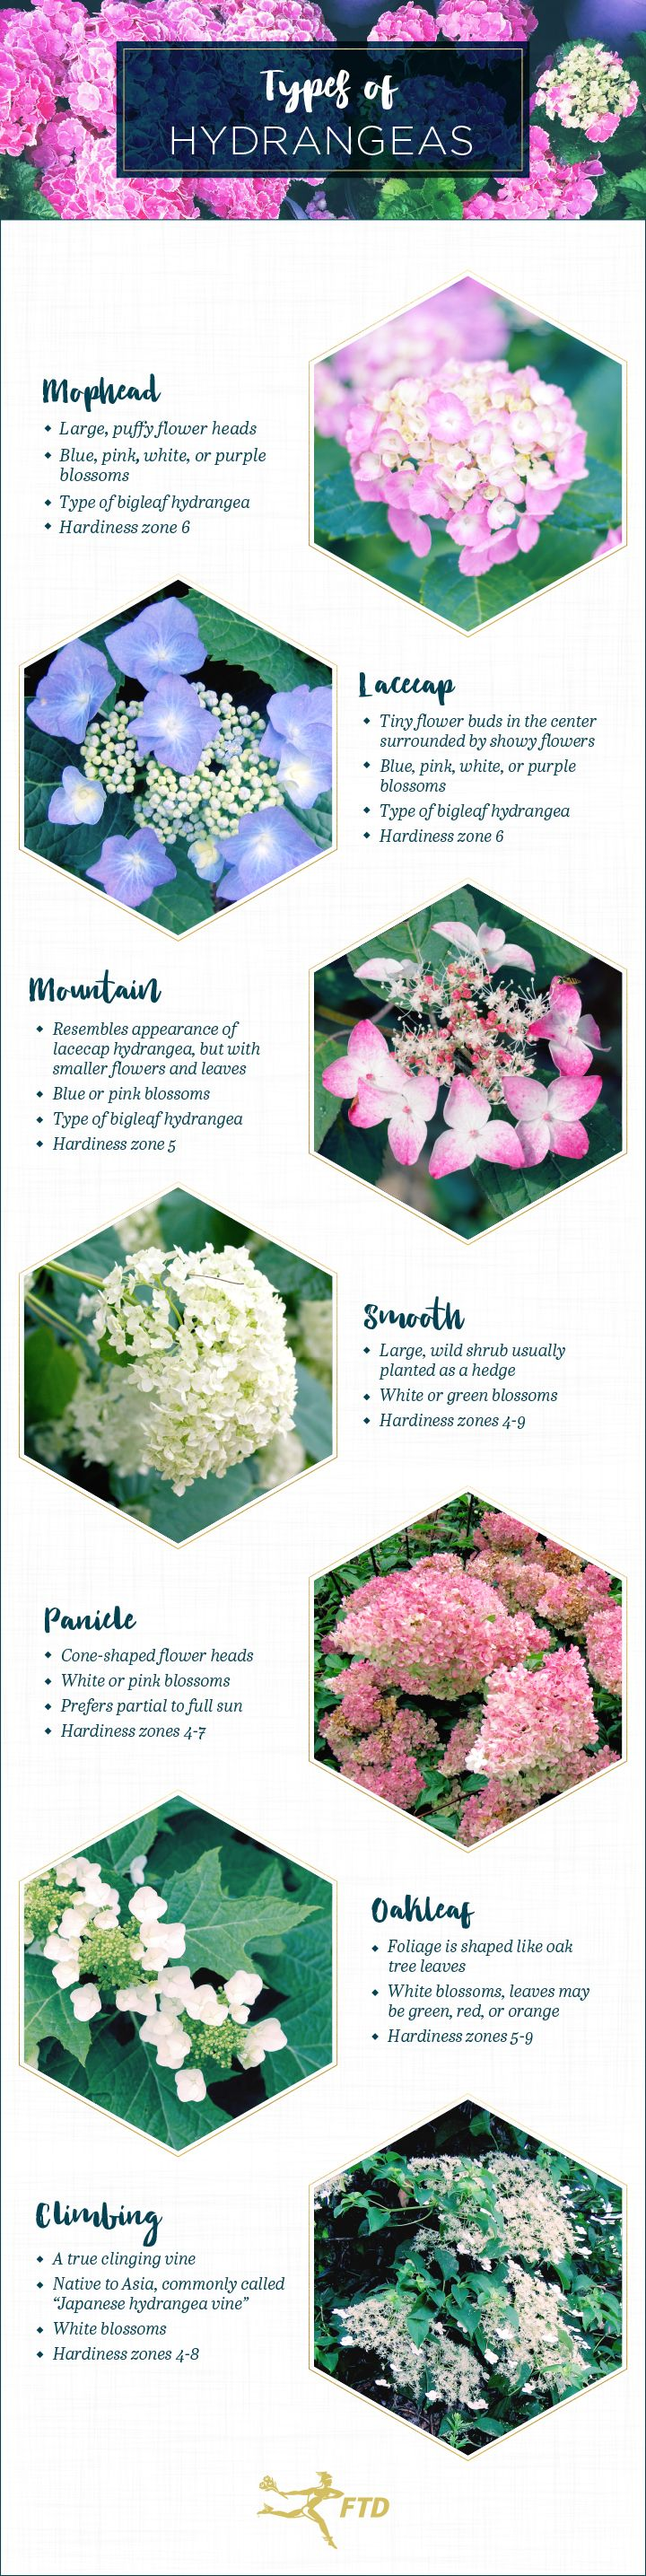 Hydrangeas are a classic flower that are a favorite amongst florists and gardeners. Their large, round flower heads are what distinguish them from other flowers. But did you know that there are five main types of hydrangeas? Although blue and purple hydrangeas are one of the first colors that come to mind, most species are …